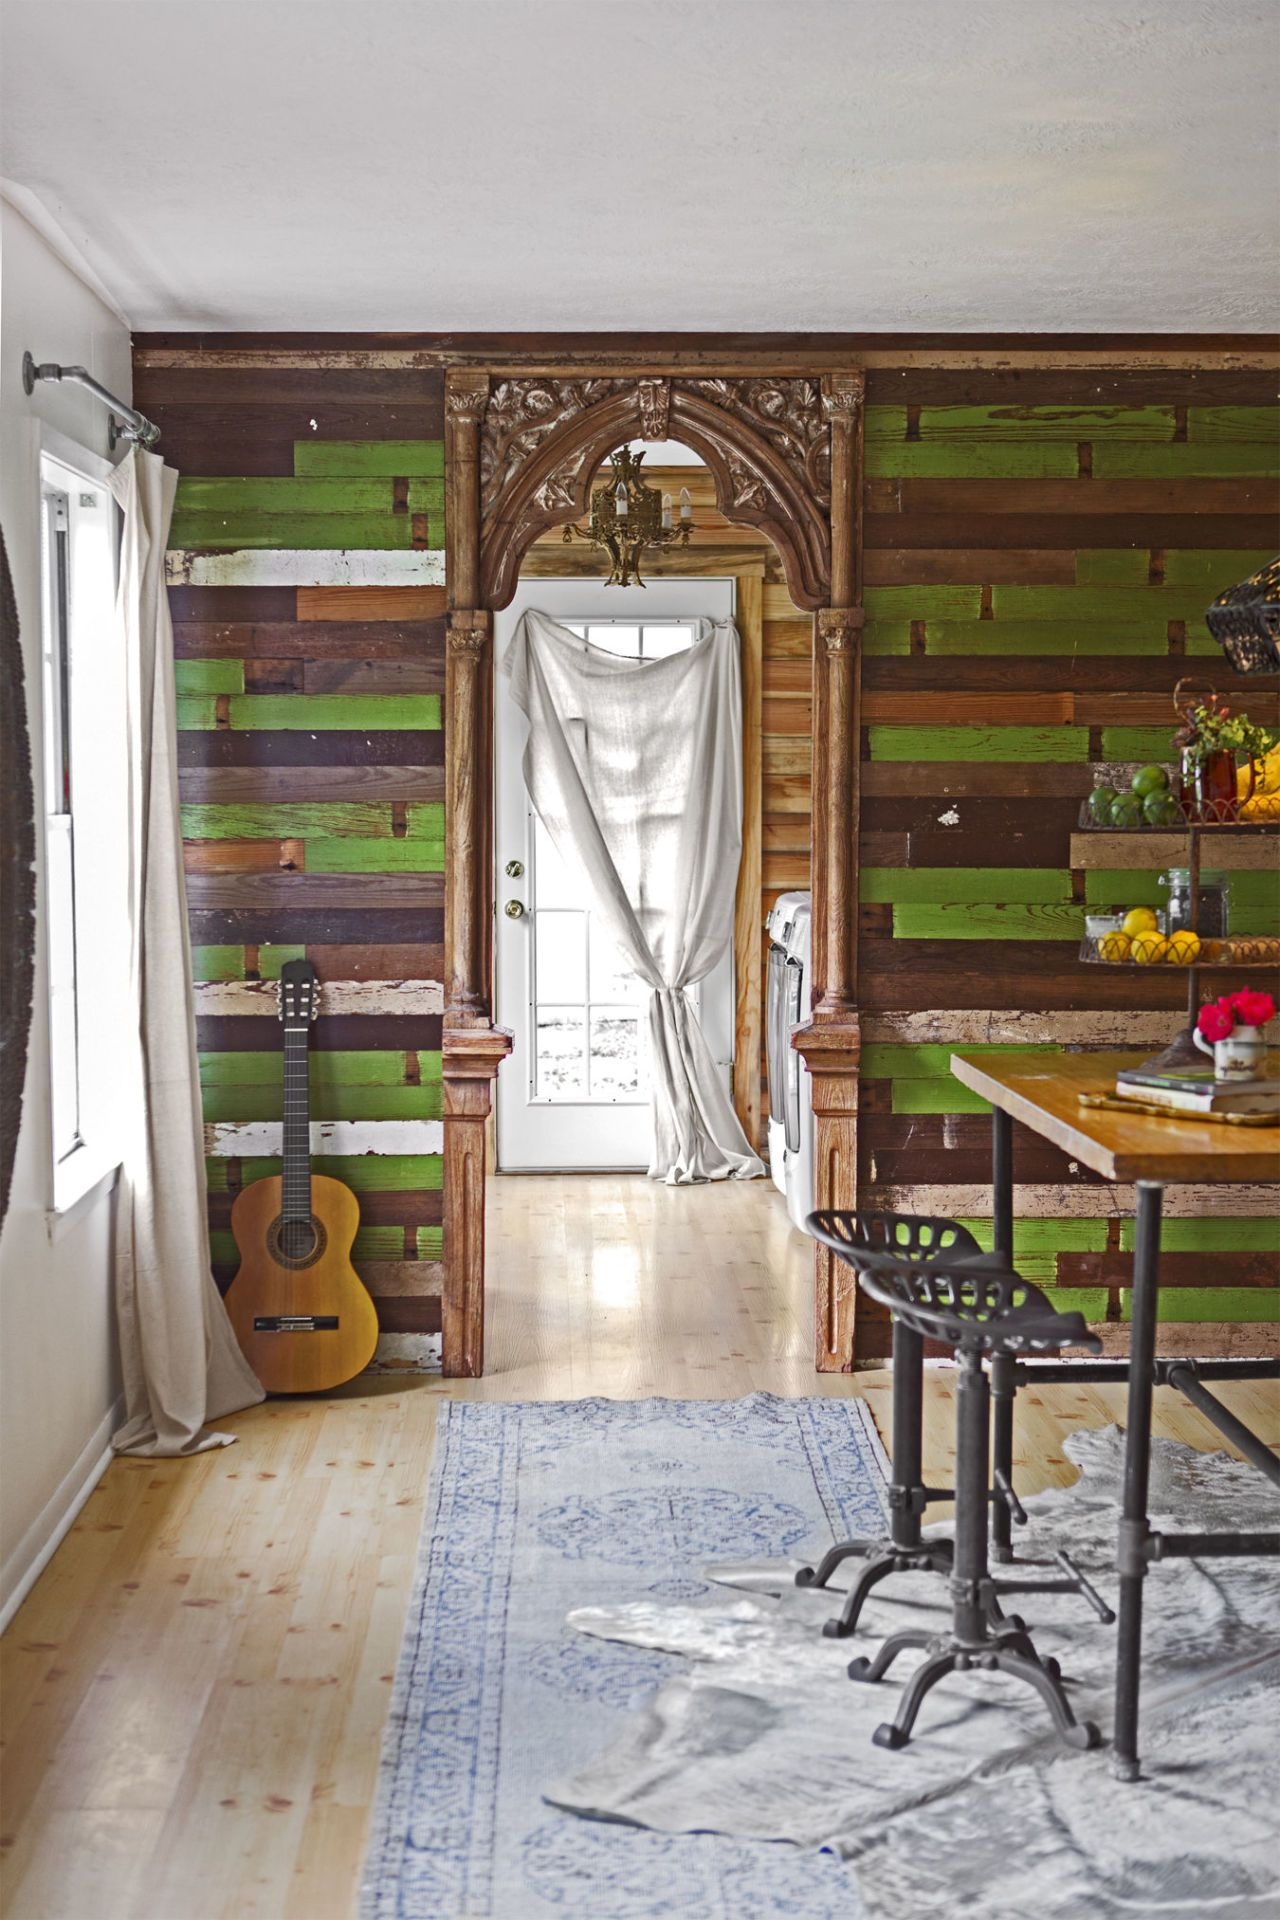 Junk Decorating Home Ideas Part - 22: Hereu0027s How To Cozy Up A Room With Reclaimed Wood Like The Junk Gypsies